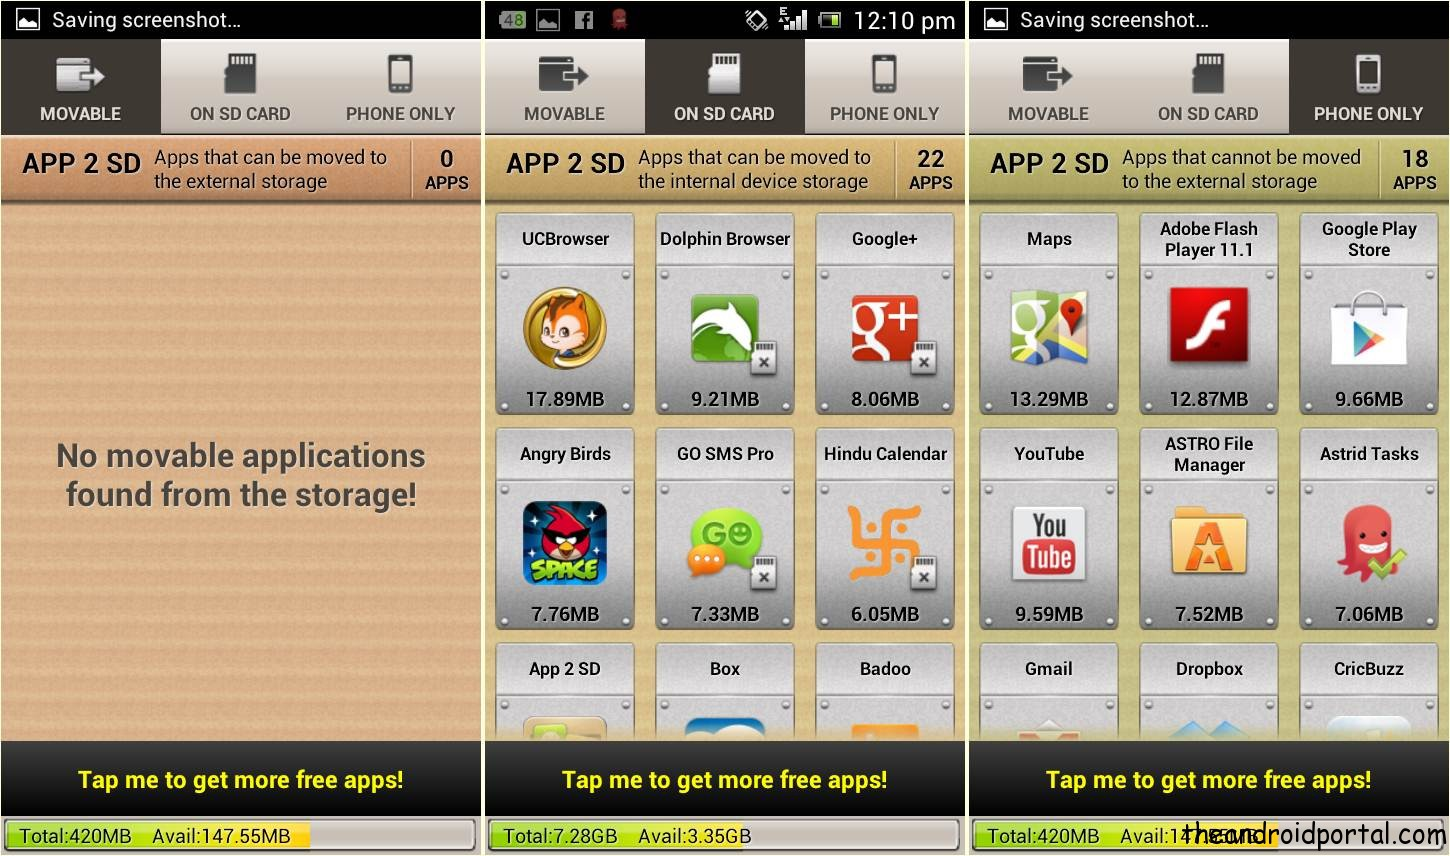 App 2 SD Install All Apps On SD Card On Your Android Device2 App 2 SD   Install All Apps On SD Card On Your Android Device